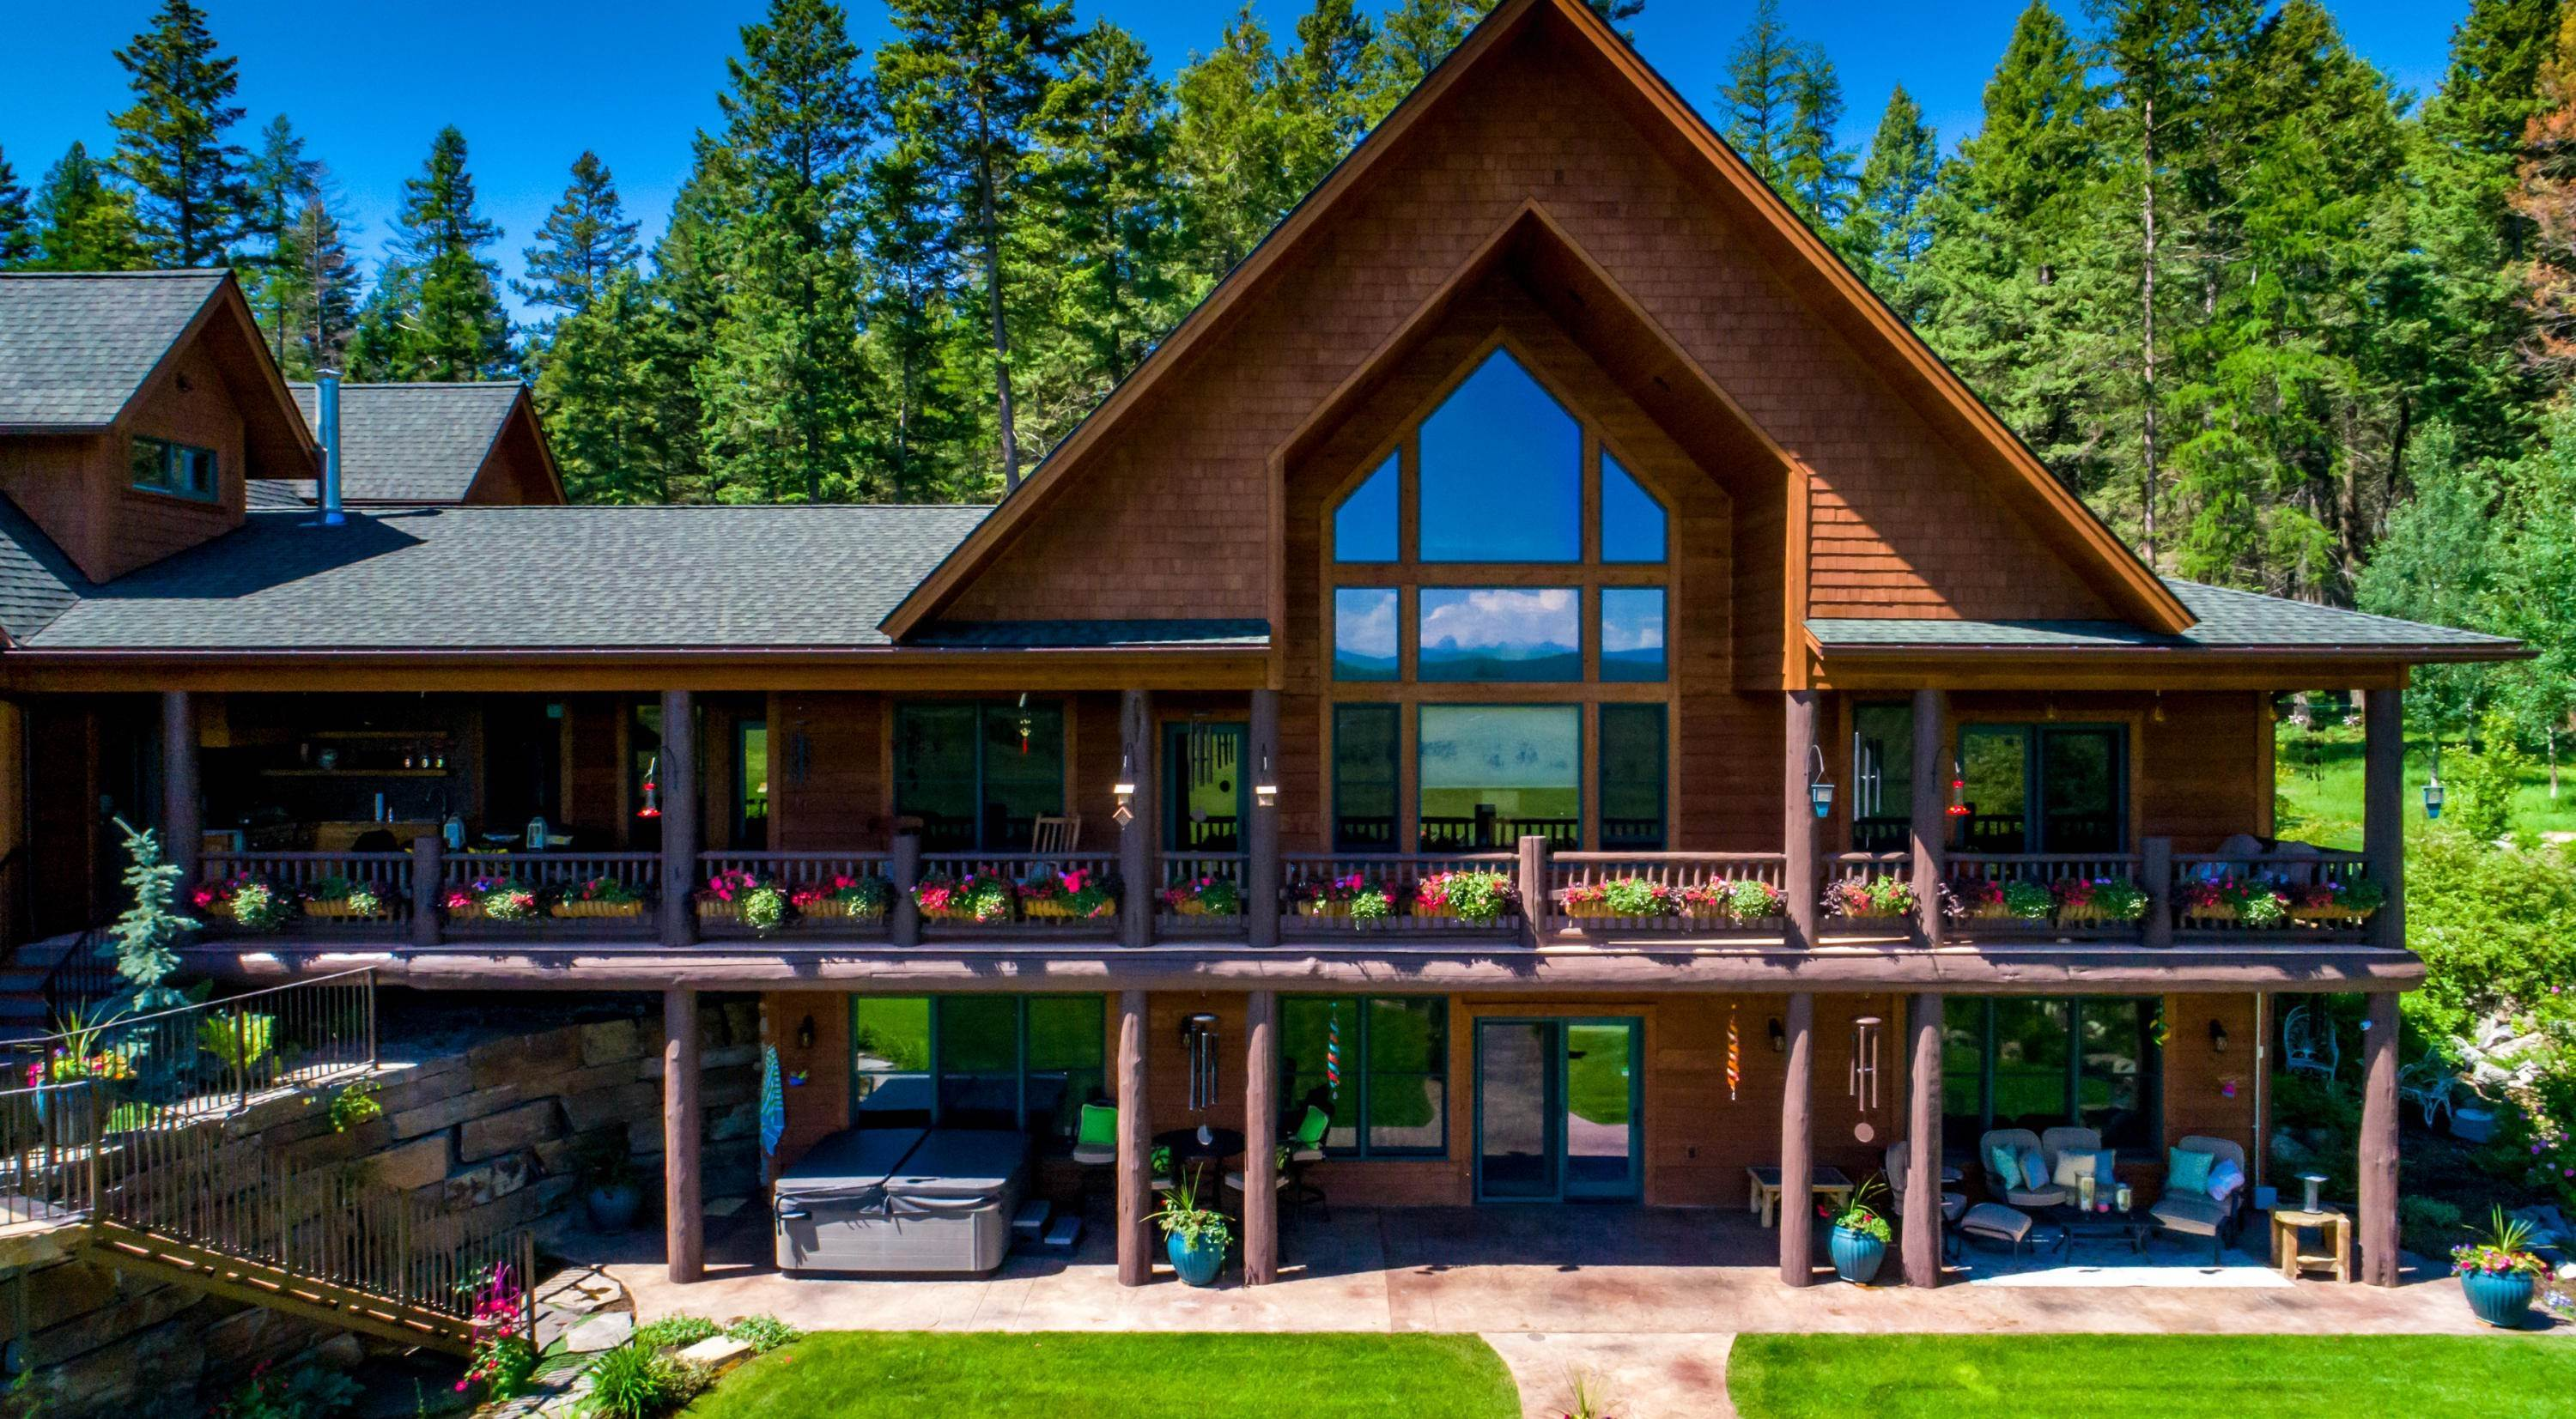 7. Single Family Homes for Sale at 1160 Kuhns Road Whitefish, Montana 59937 United States